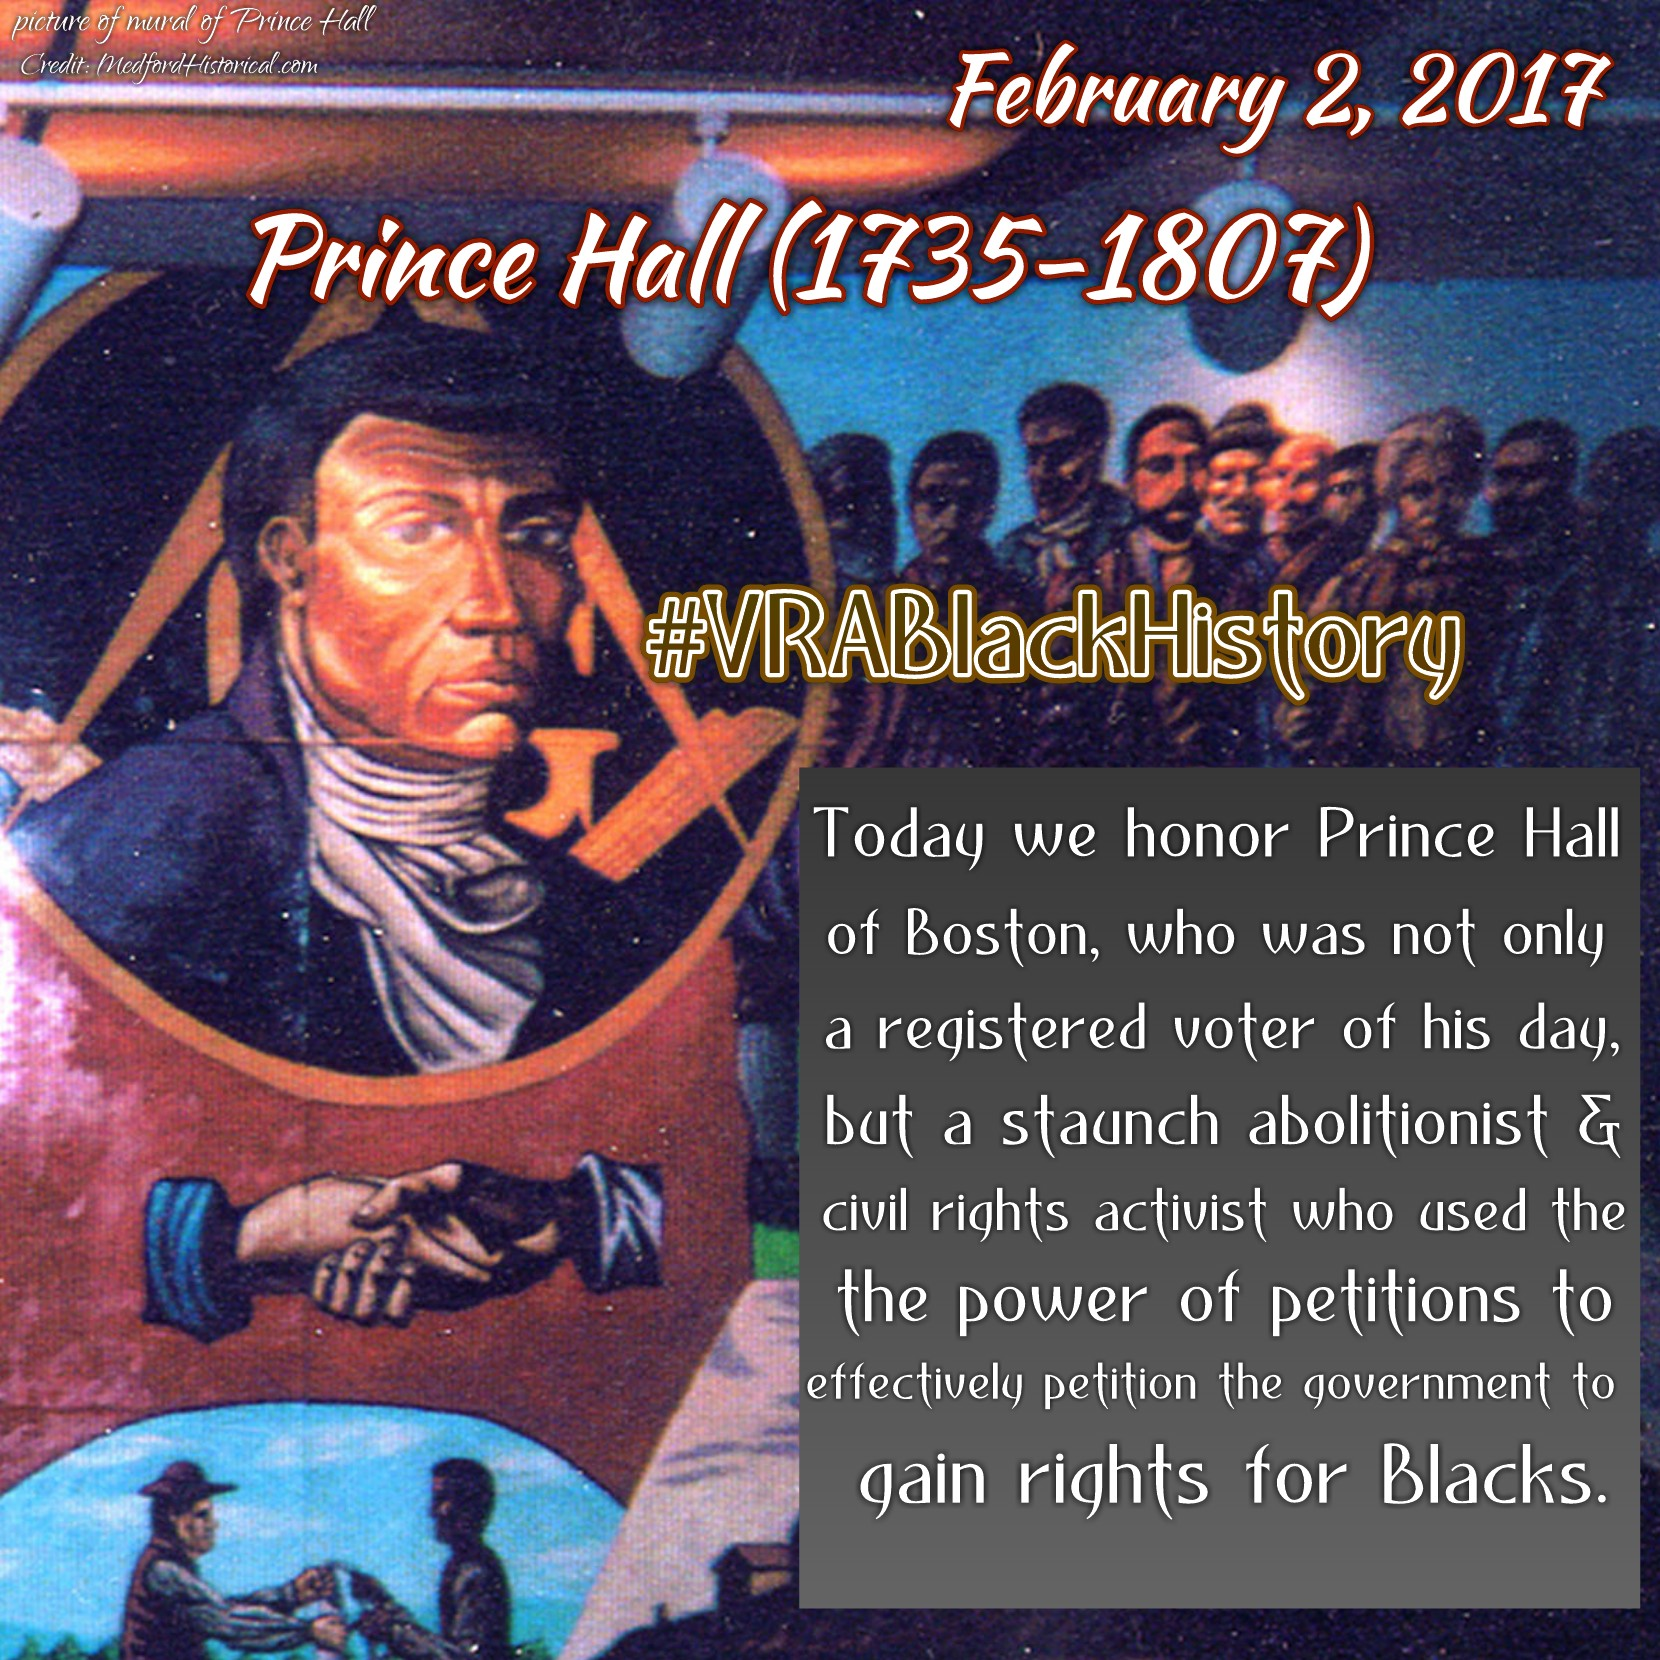 Today we honor Prince Hall of Boston, who was not only a registered voter of his day, but a staunch abolitionist and civil rights activist who used the power of petitions to effectively petition the government to gain rights for Blacks.  This article exemplified the complexities of the fight for Black suffrage during a colonial era built on the immoral institution of slavery.